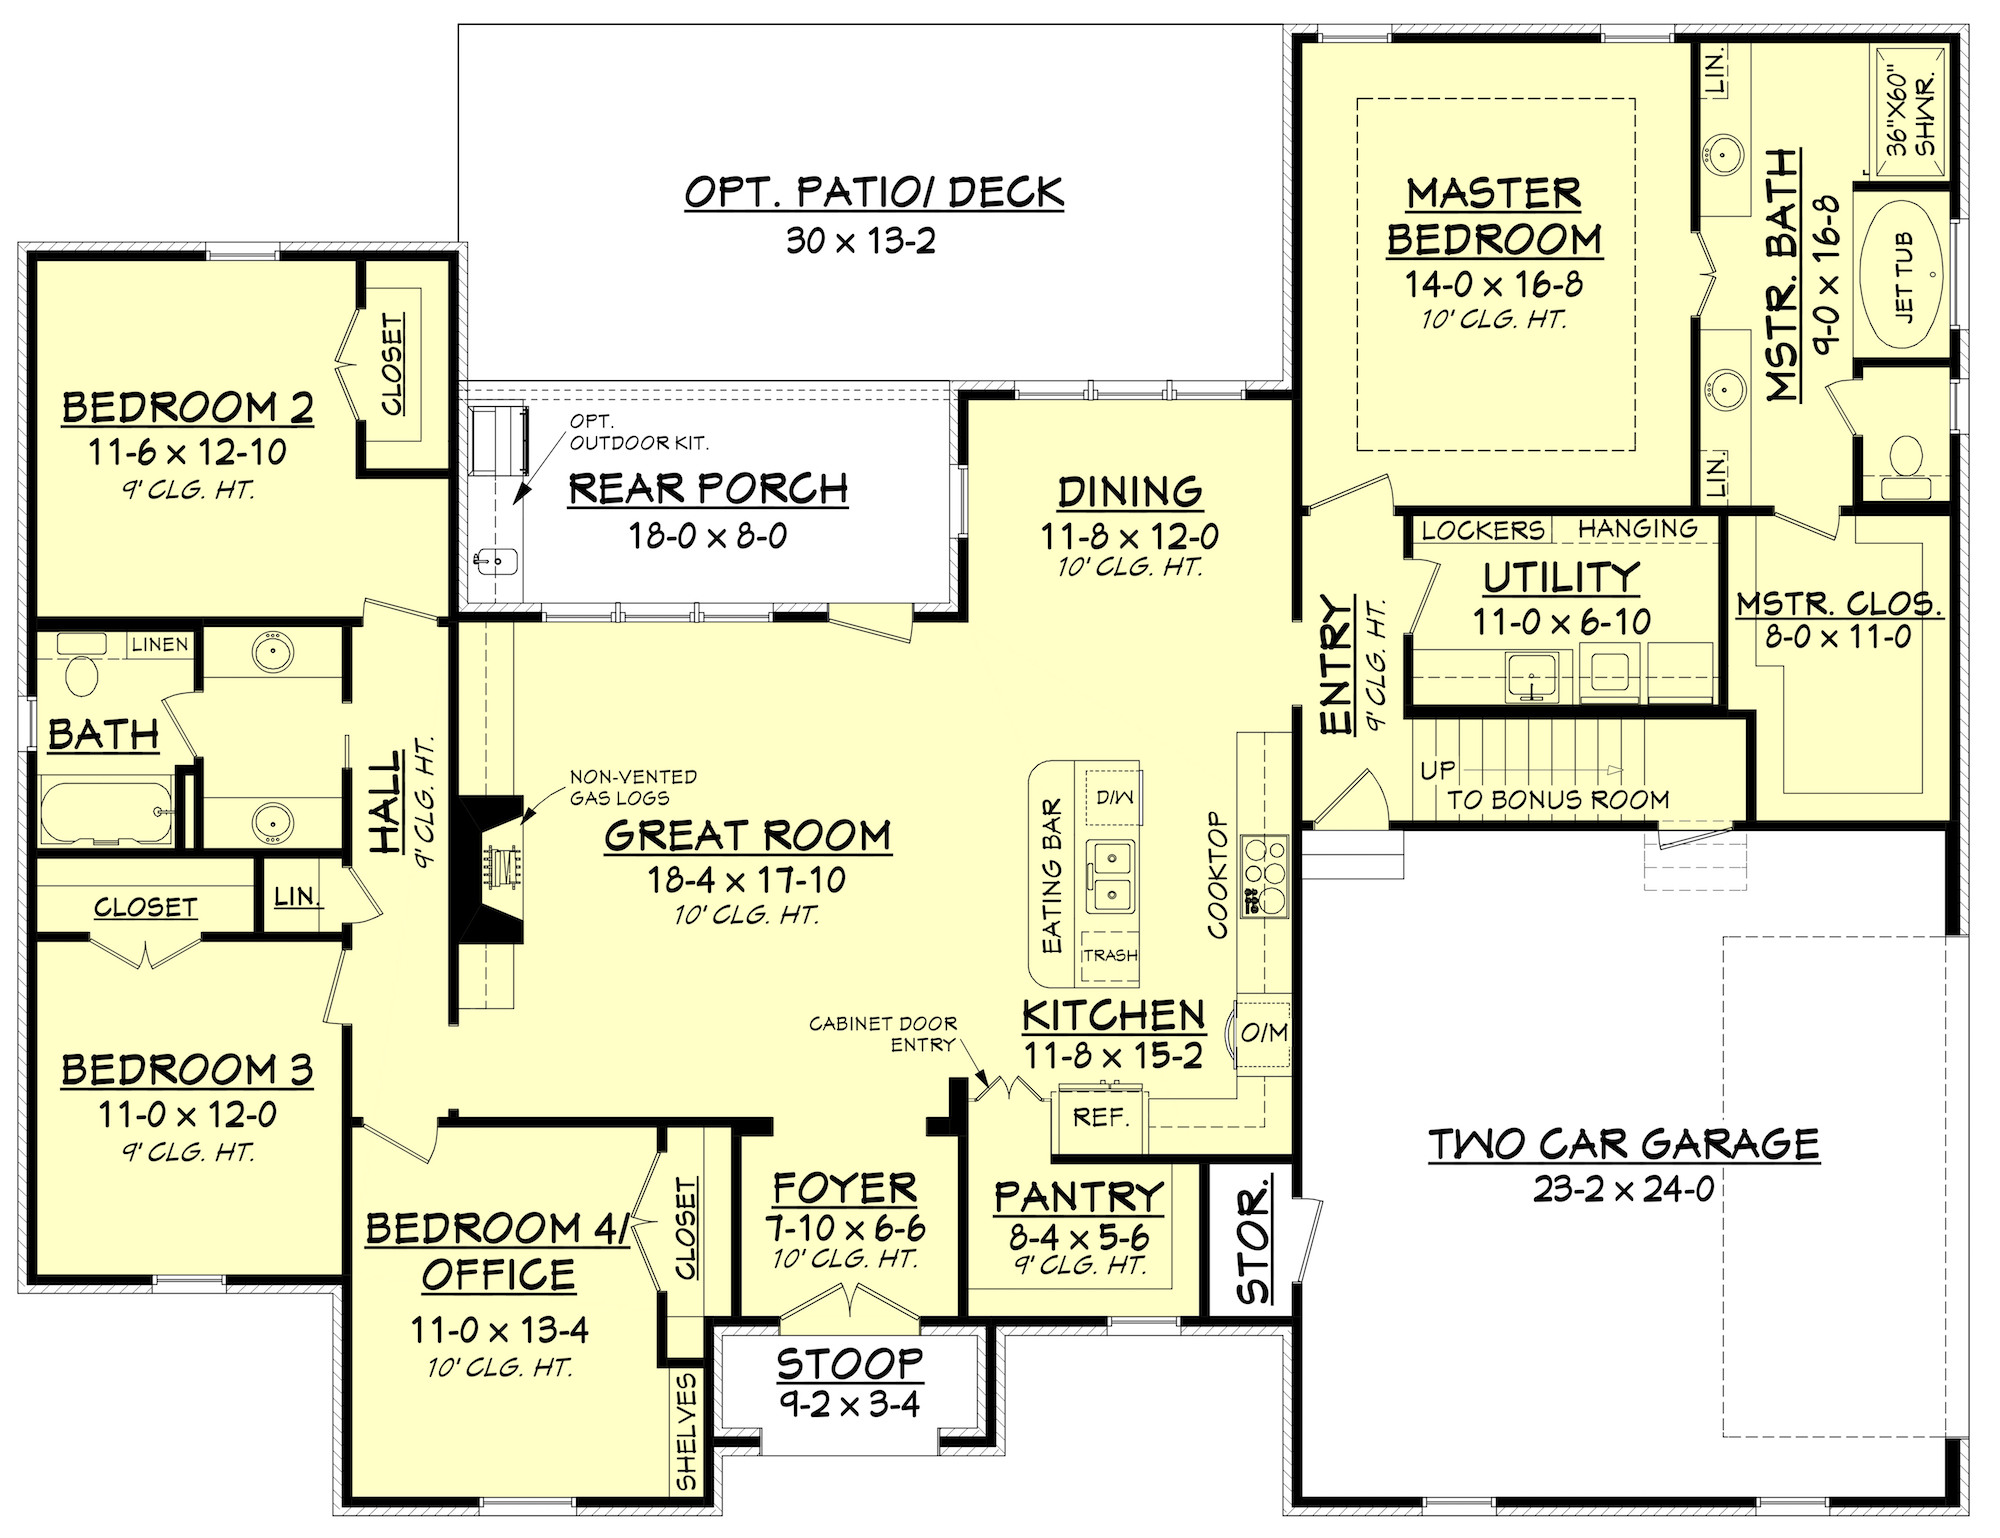 Acadian house plan 142 1154 4 bedrm 2210 sq ft home plan for House plann